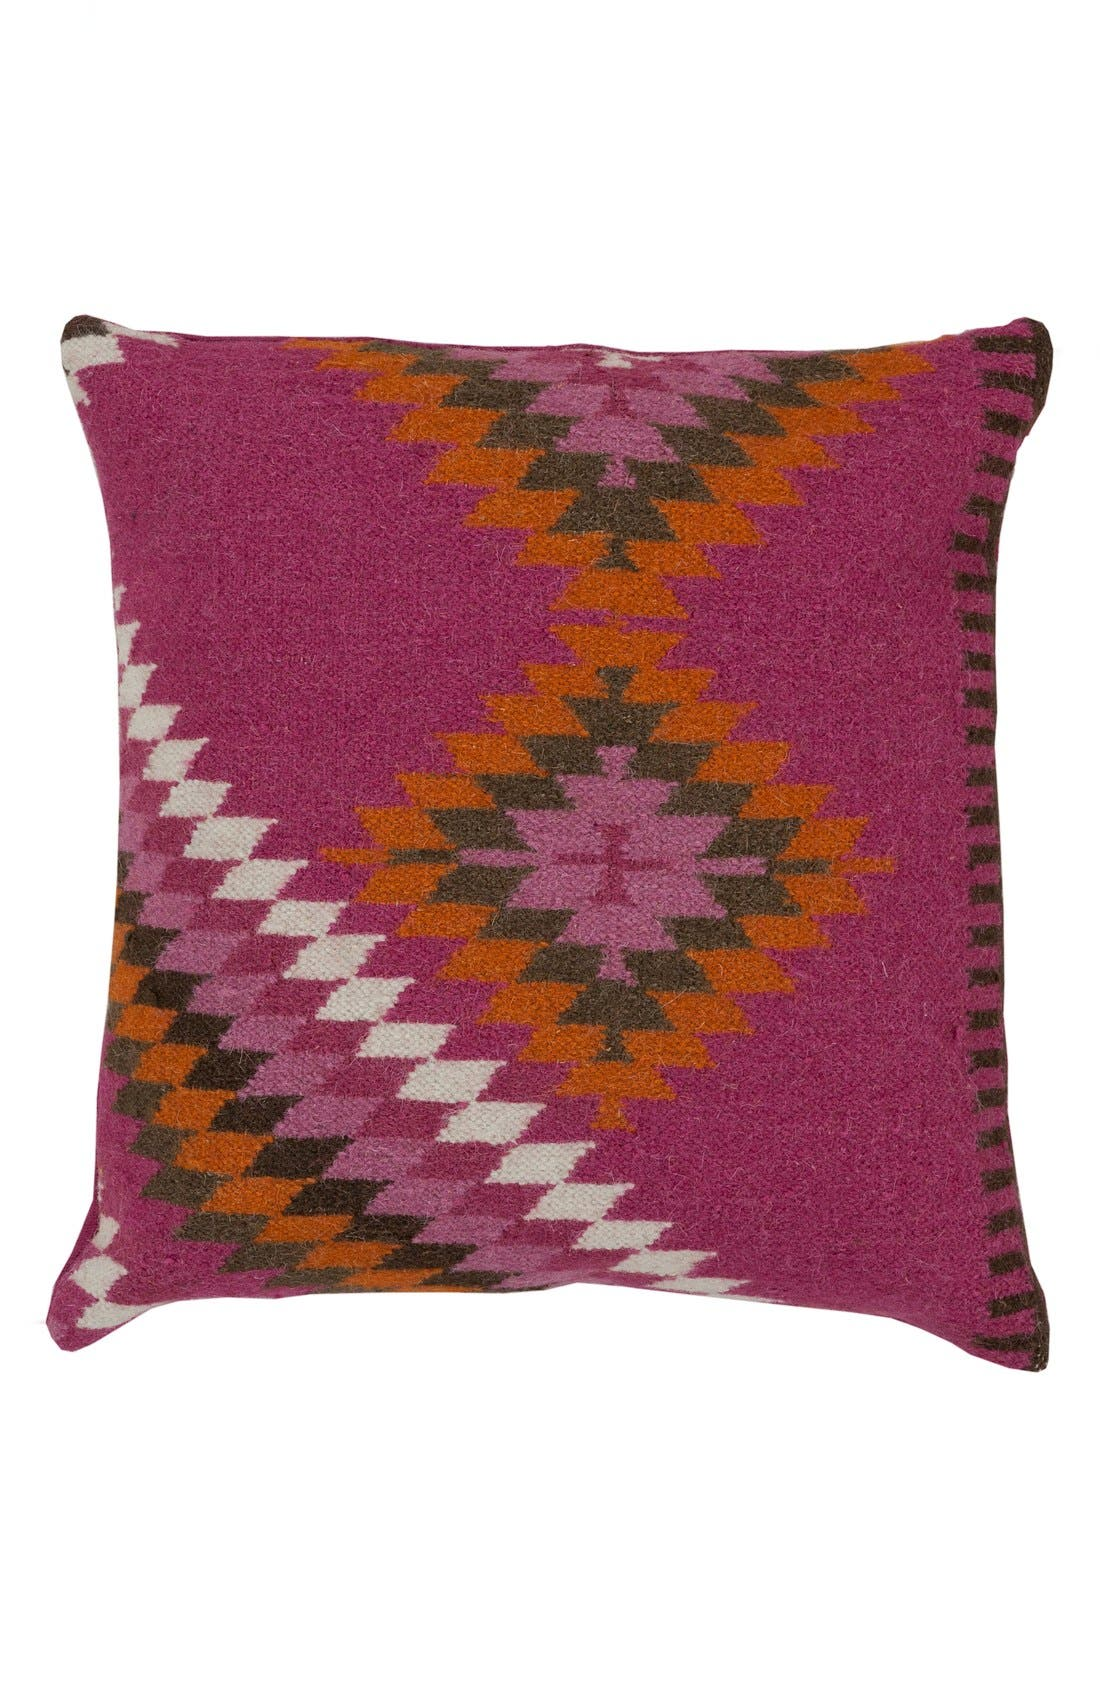 Kilim Wool Accent Pillow Cover,                             Main thumbnail 1, color,                             650